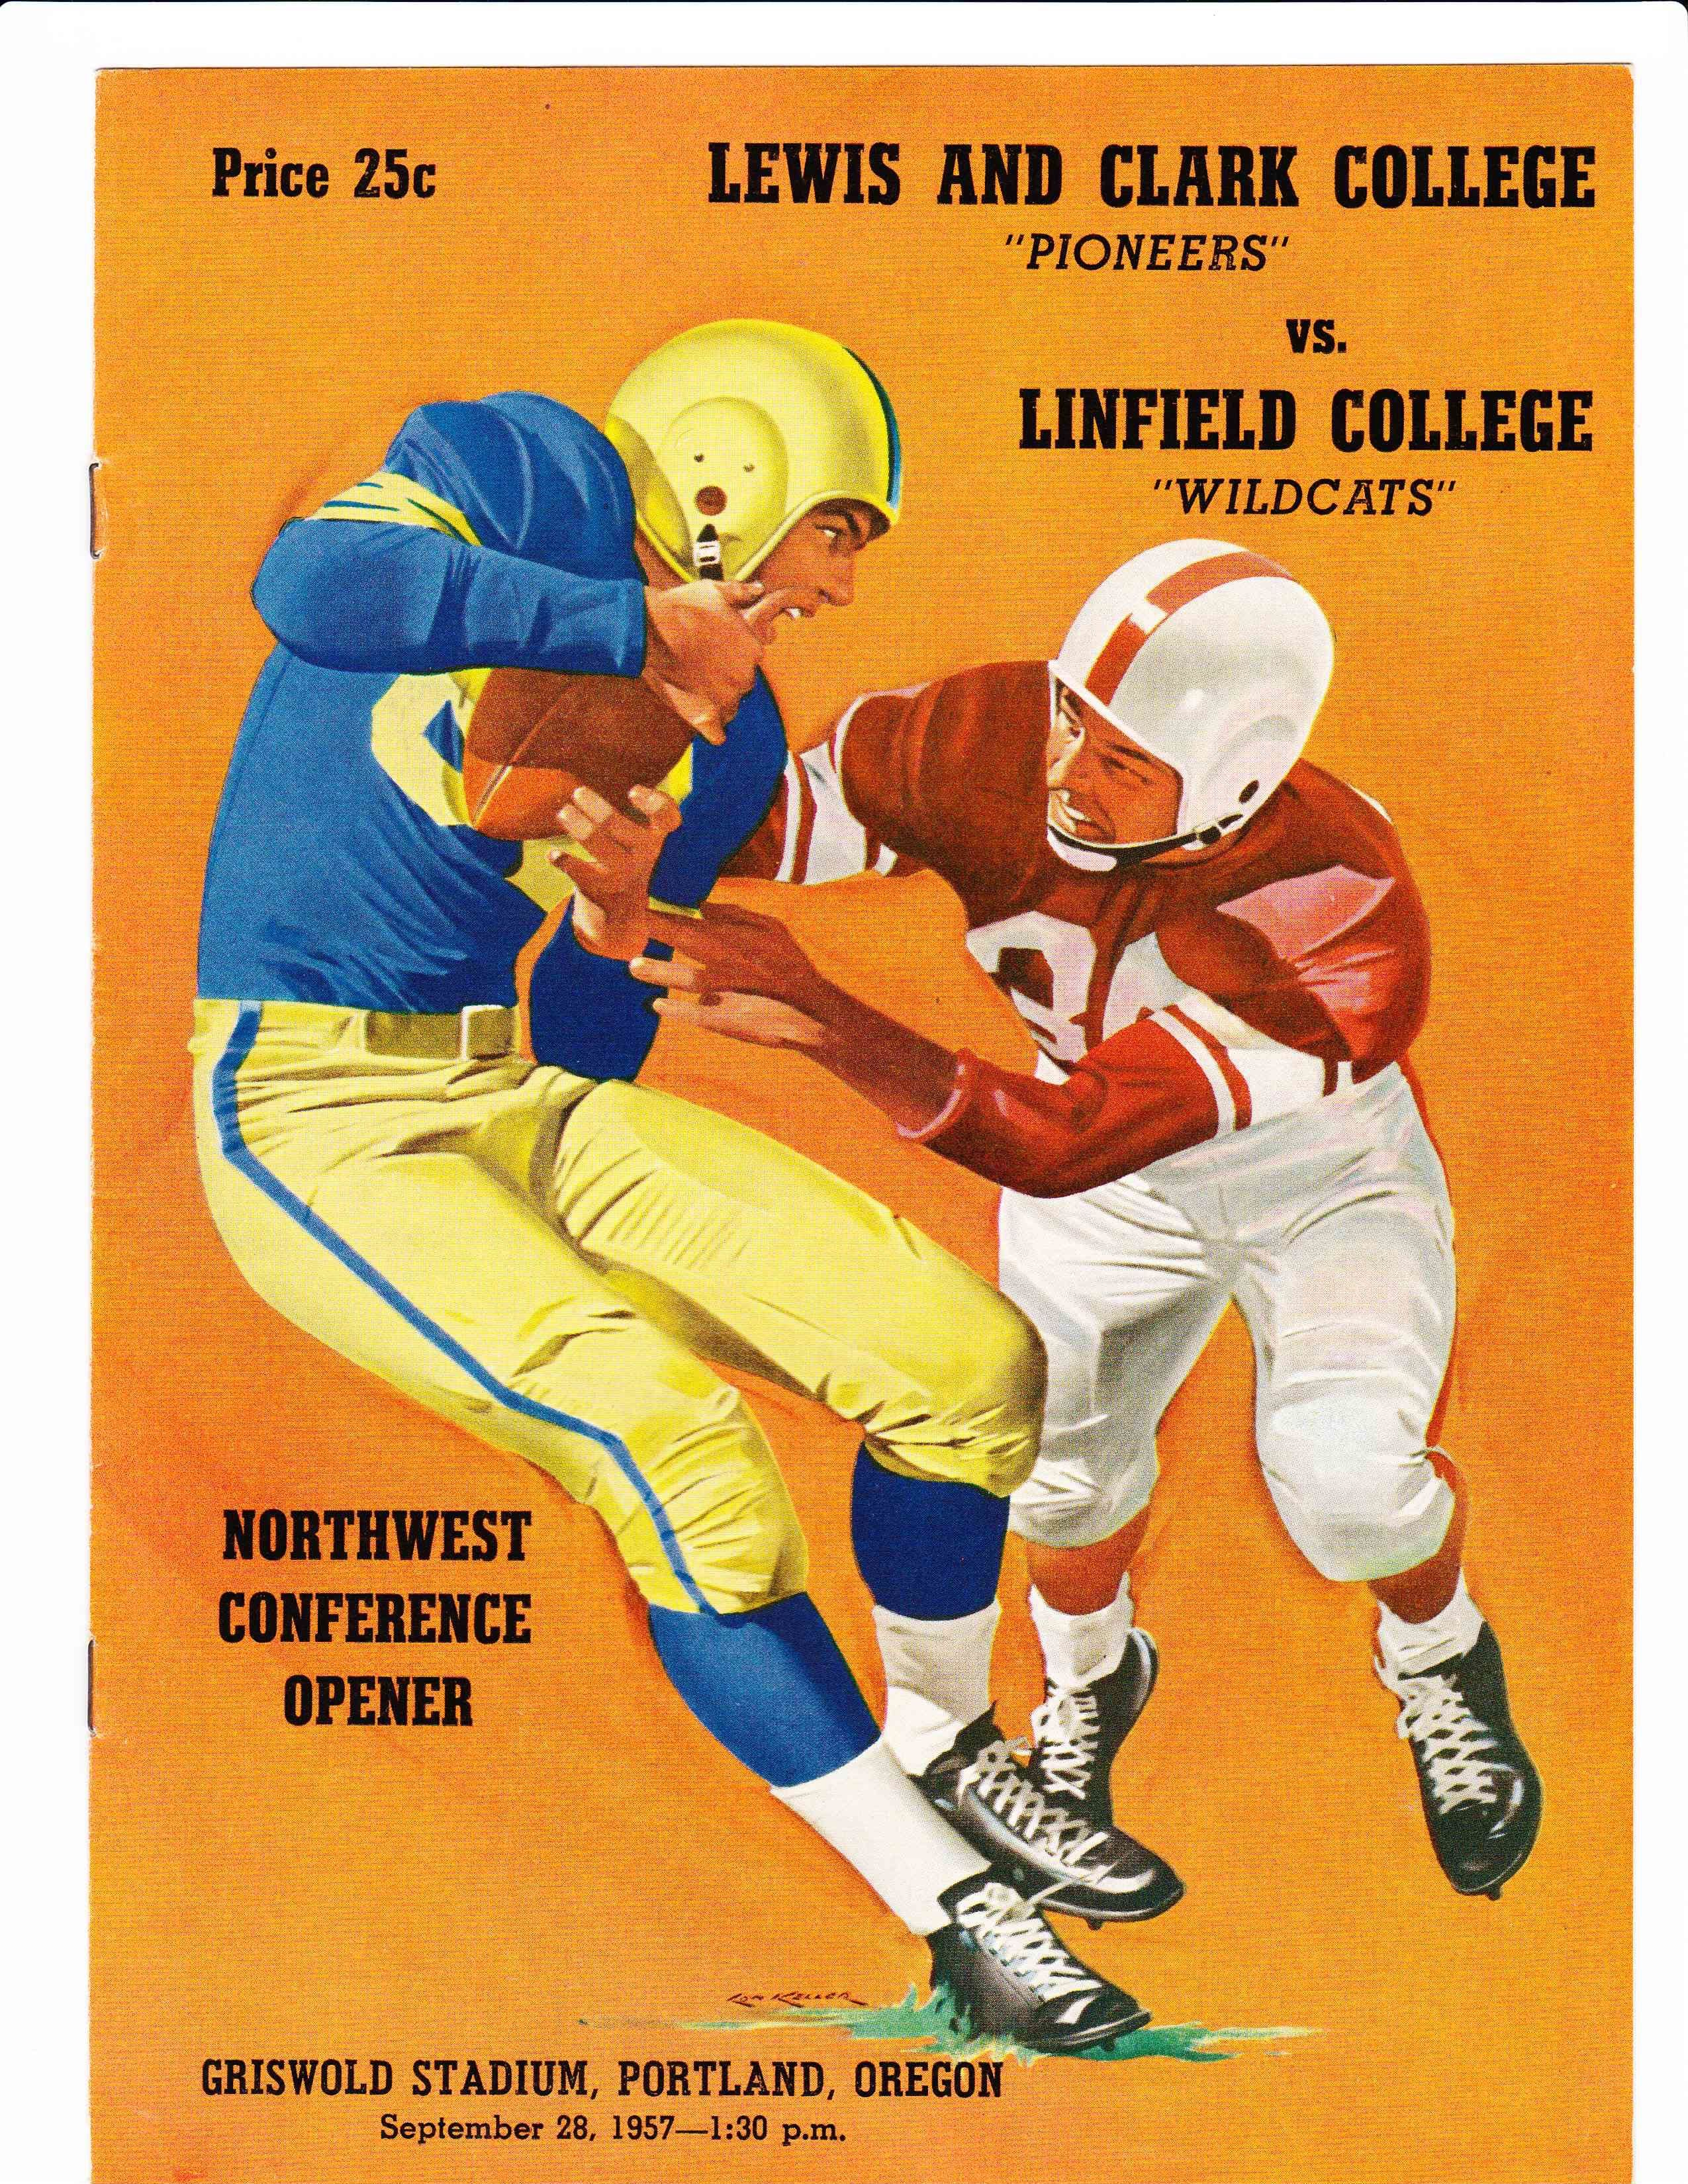 Lewis And Clark Vs Linfield College Football Program 1957 Lewis And Clark College Lewis And Clark Football Program